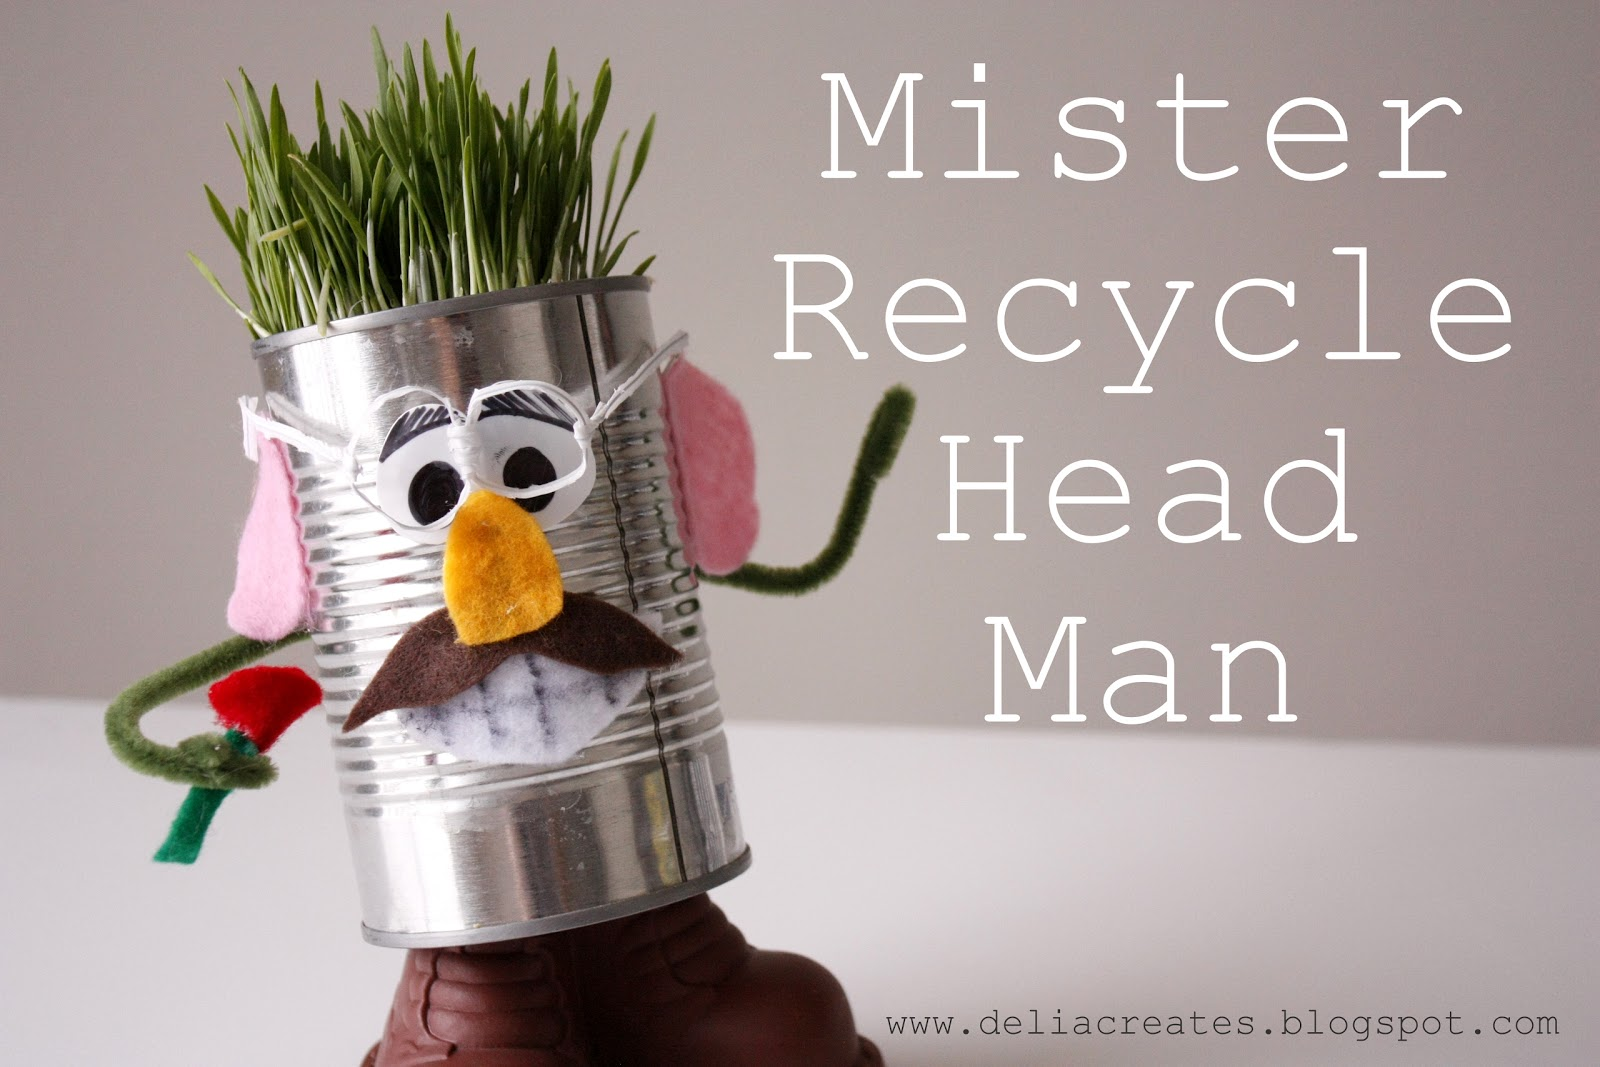 Head man mister recycle kids crafts earth day crafts for Recycle project ideas